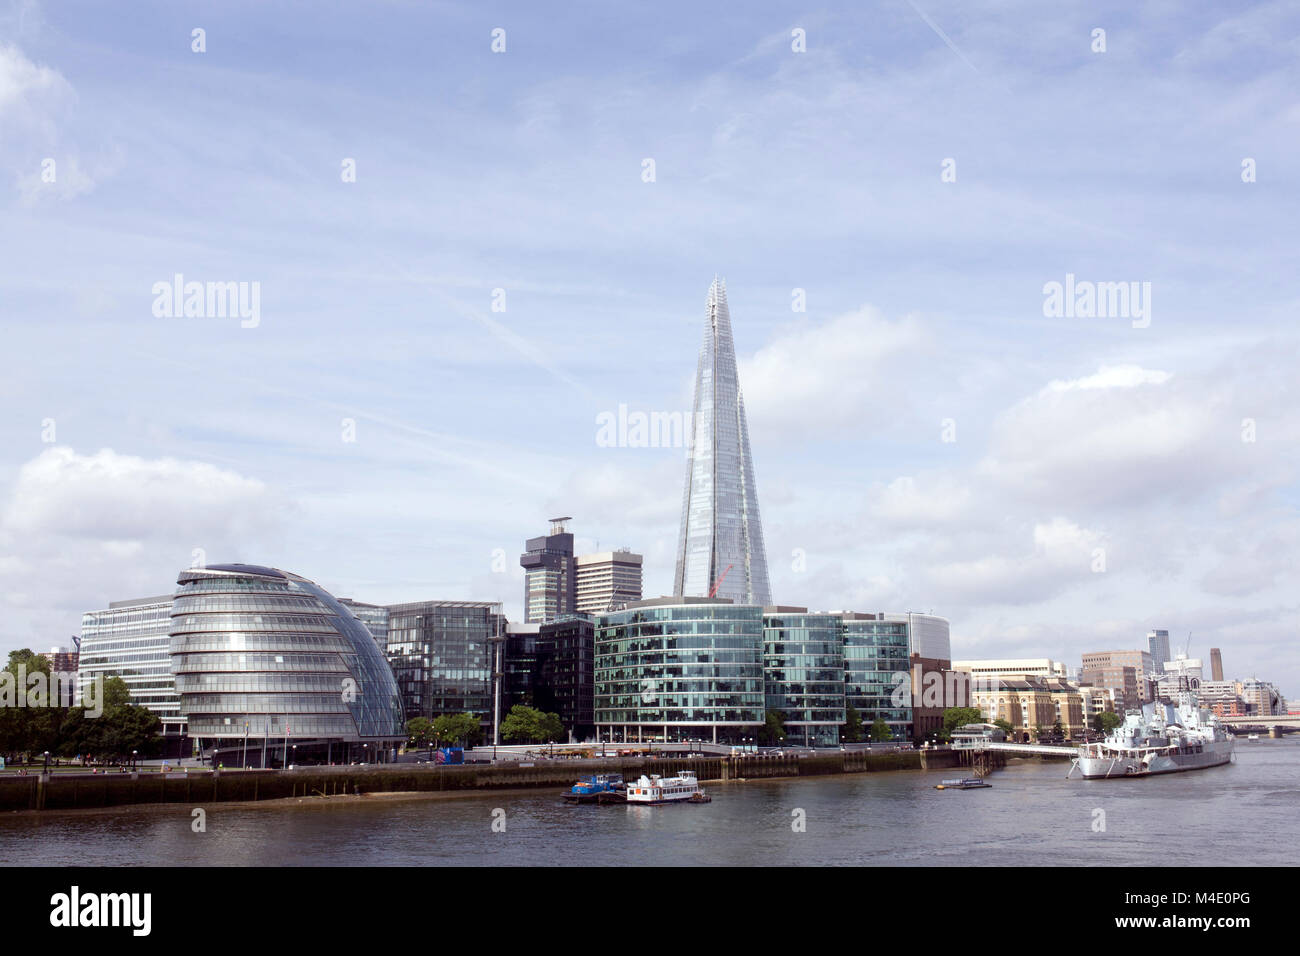 Colour Photograph of City Hall and The Shard with HMS Belfast, London, England, UK. Credit: London Snapper - Stock Image